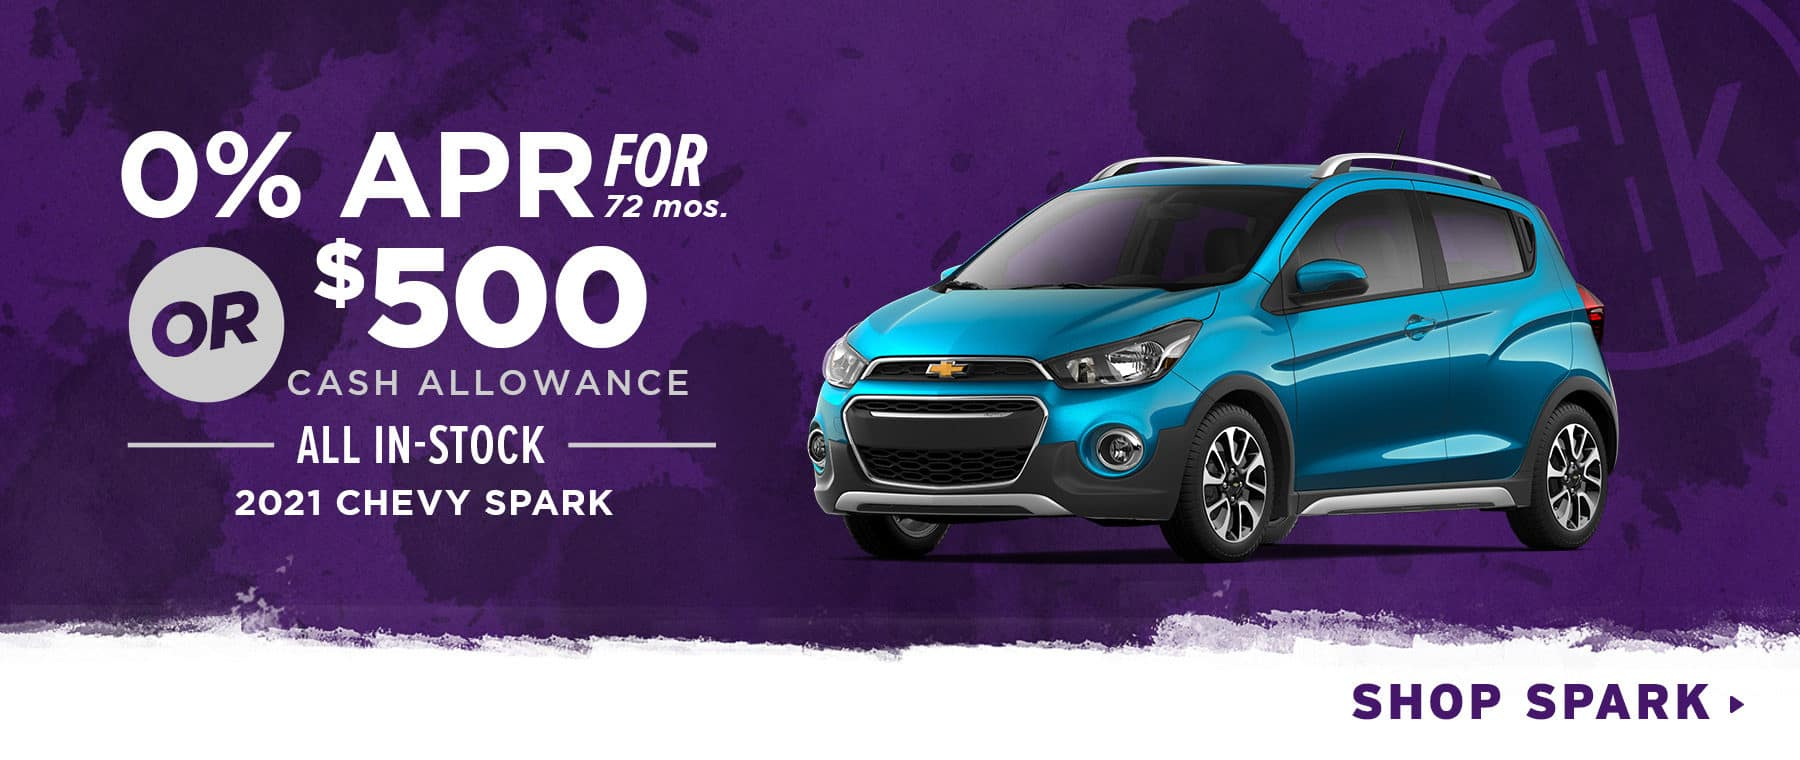 0% for 72 mos. OR $500 Cash Allowance All In-Stock 2021 Chevy Spark